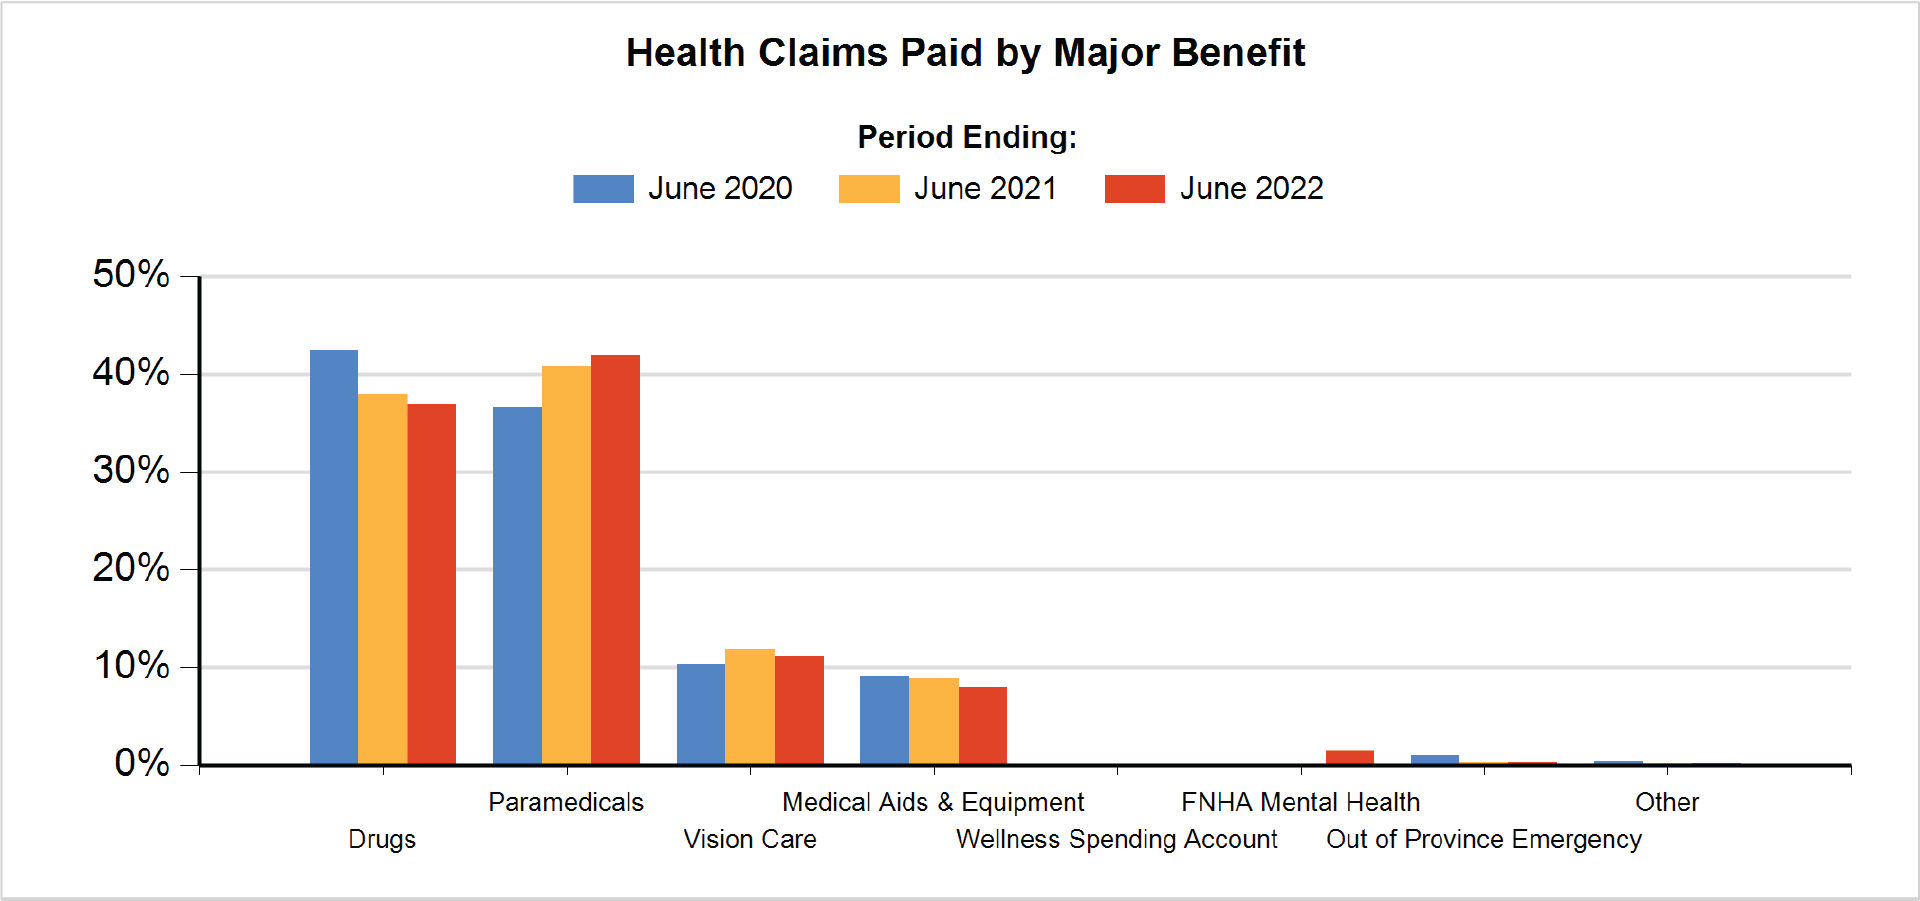 Health Claims Paid by Major Benefit